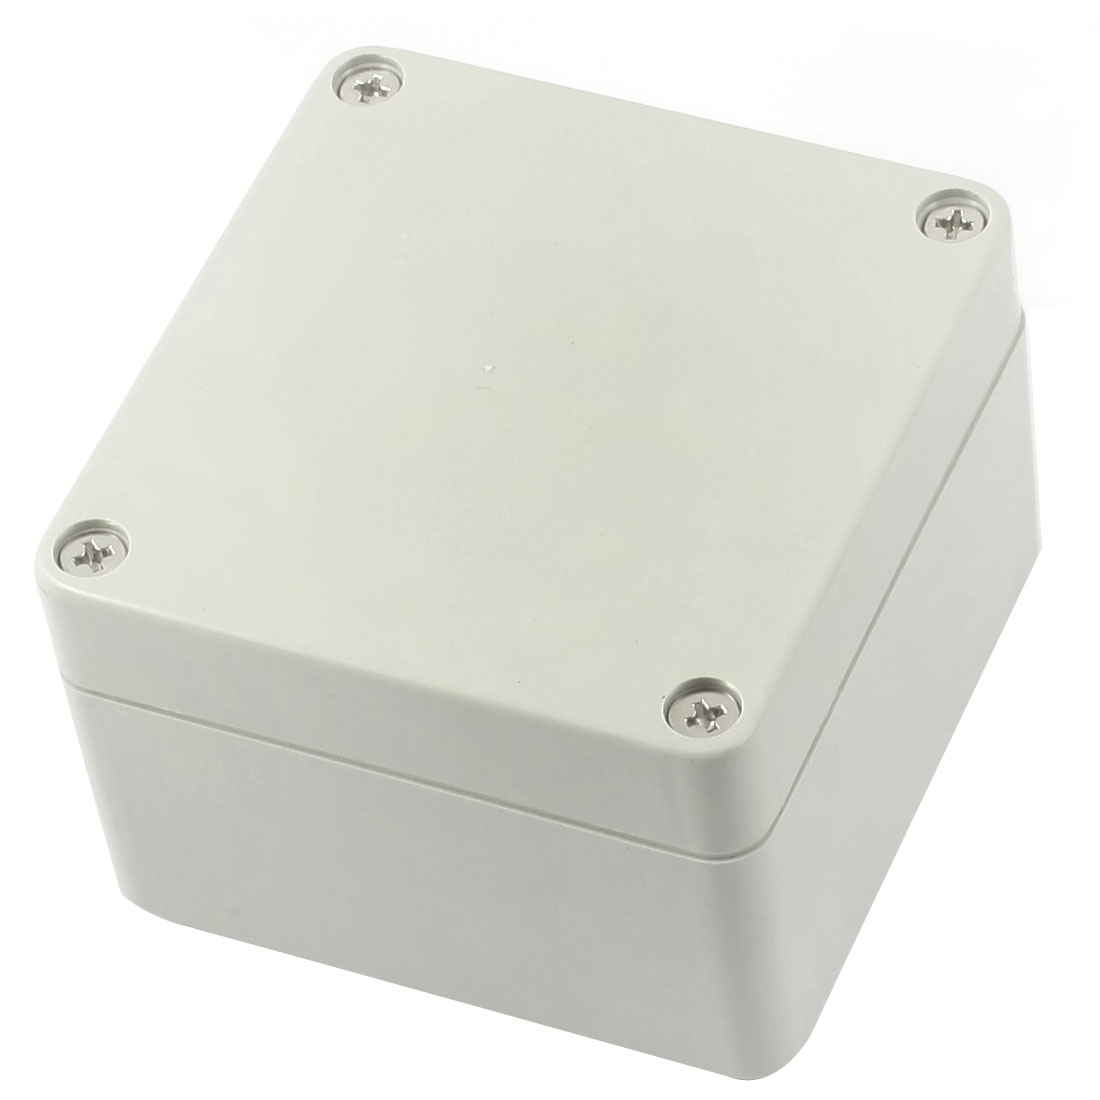 Surface Mount Waterproof Plastic Sealed Electric Junction Enclose Box Power Protection Case 83mm x 81mm x 56mm